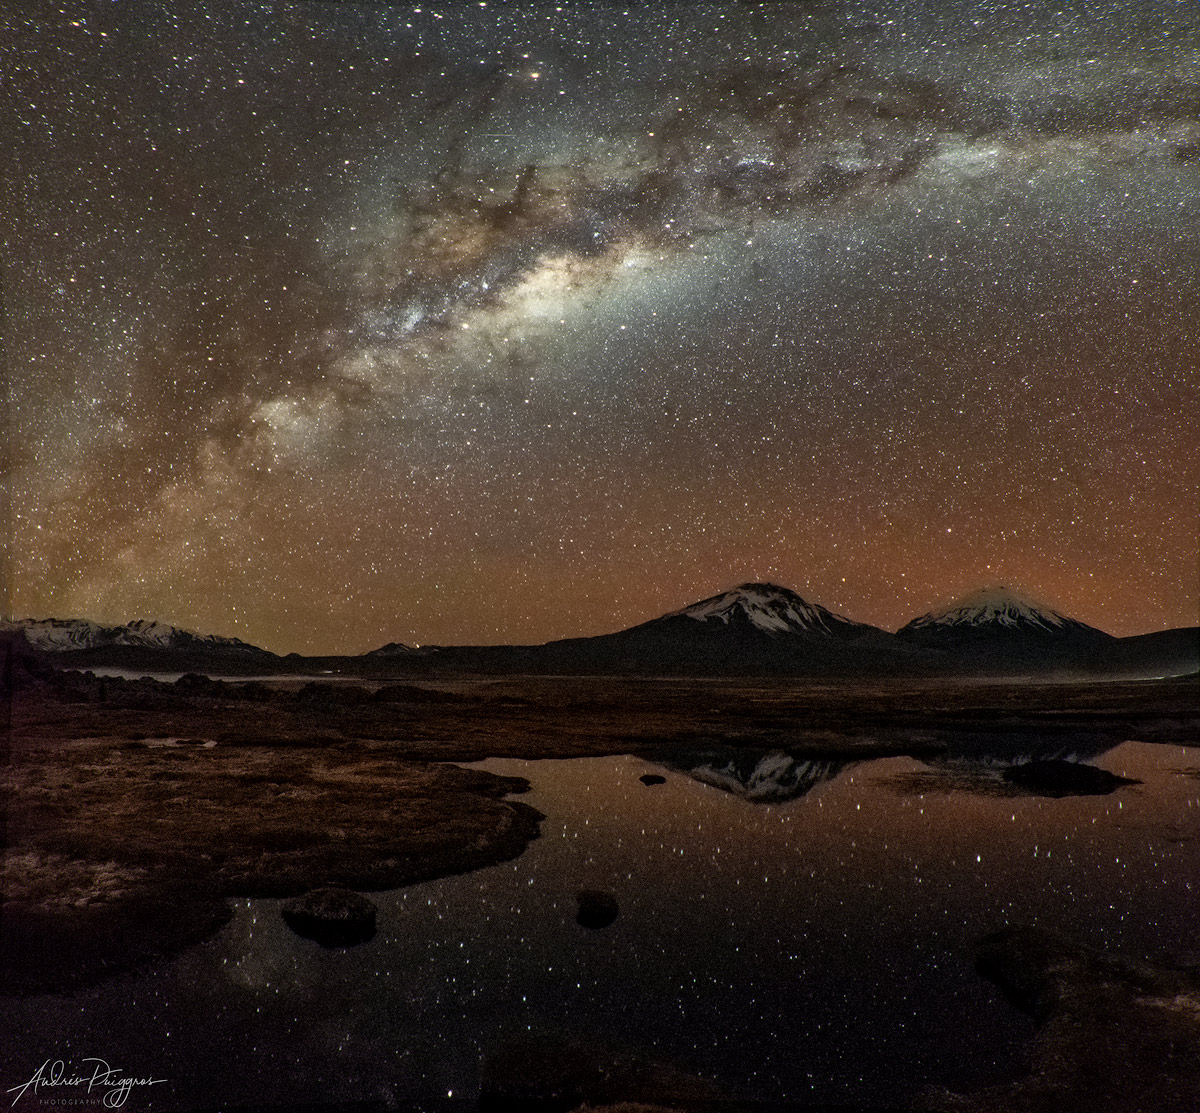 "Panorama de 9 tomas horizontales, tomada a las 20:01, f/4, 30"", ISO 6400, 10 mm DX."